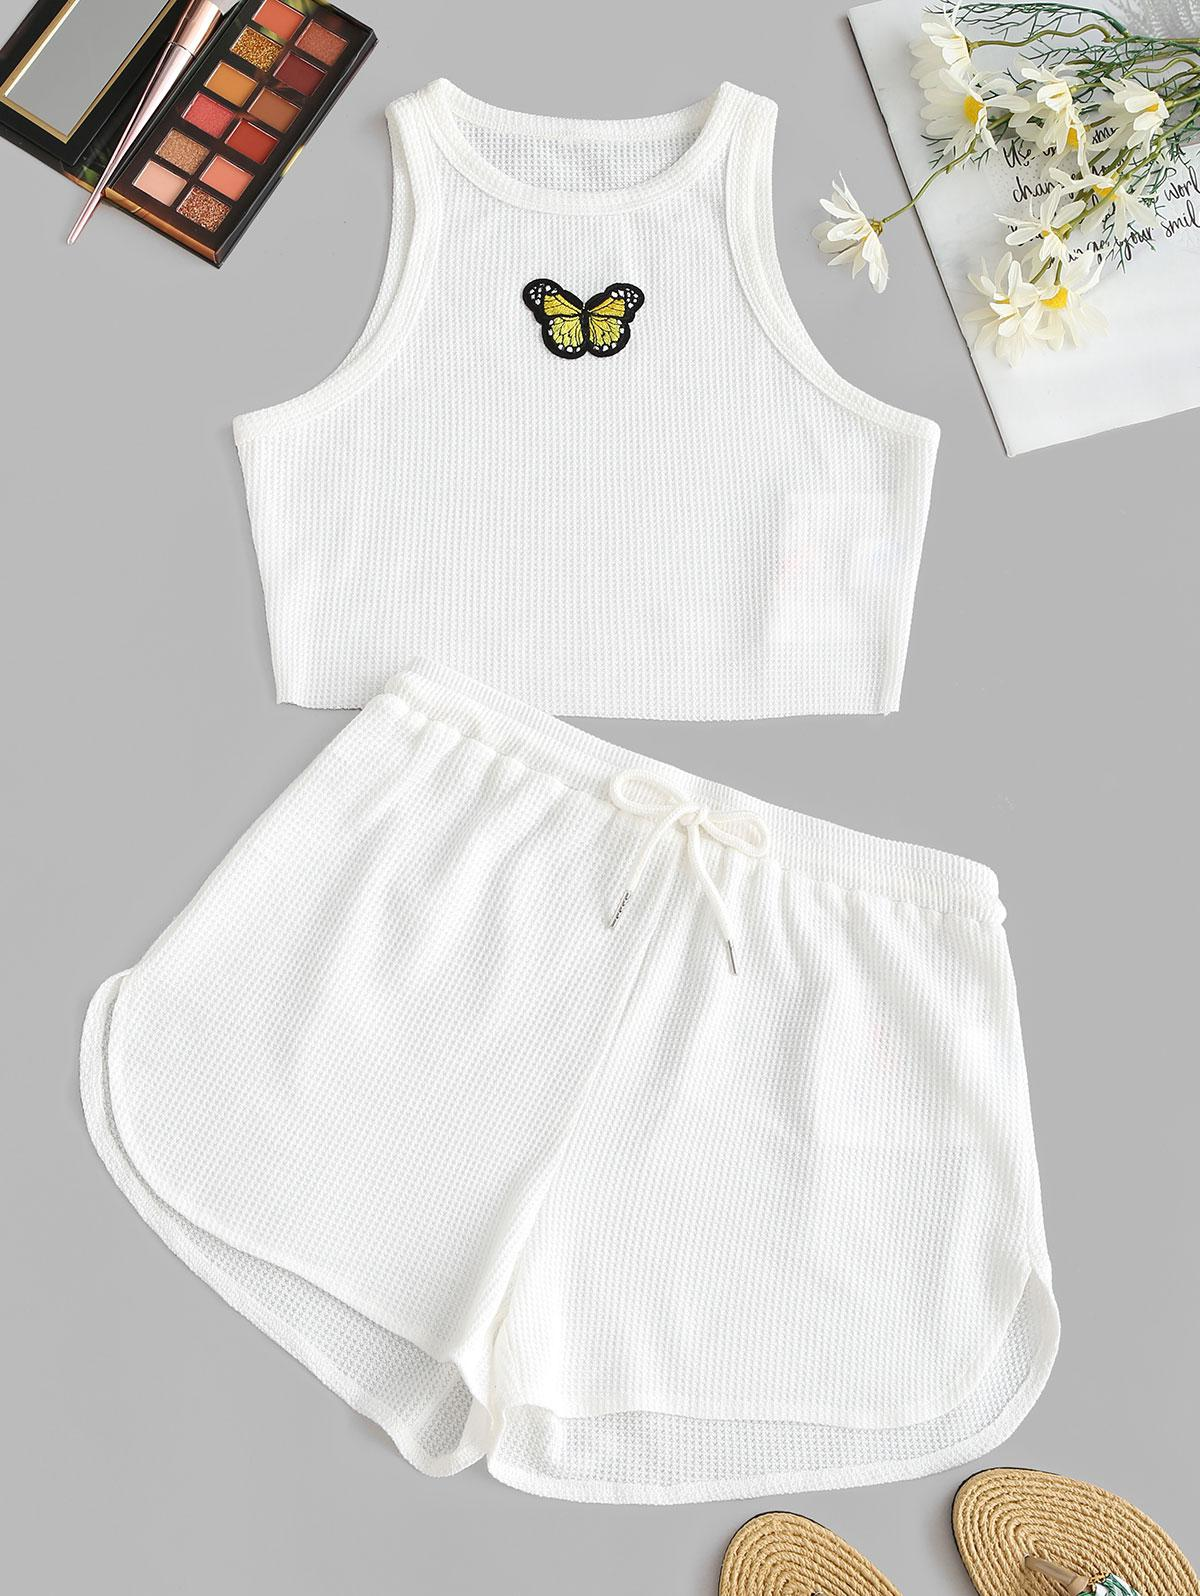 ZAFUL Butterfly Crop Top and Shorts Set